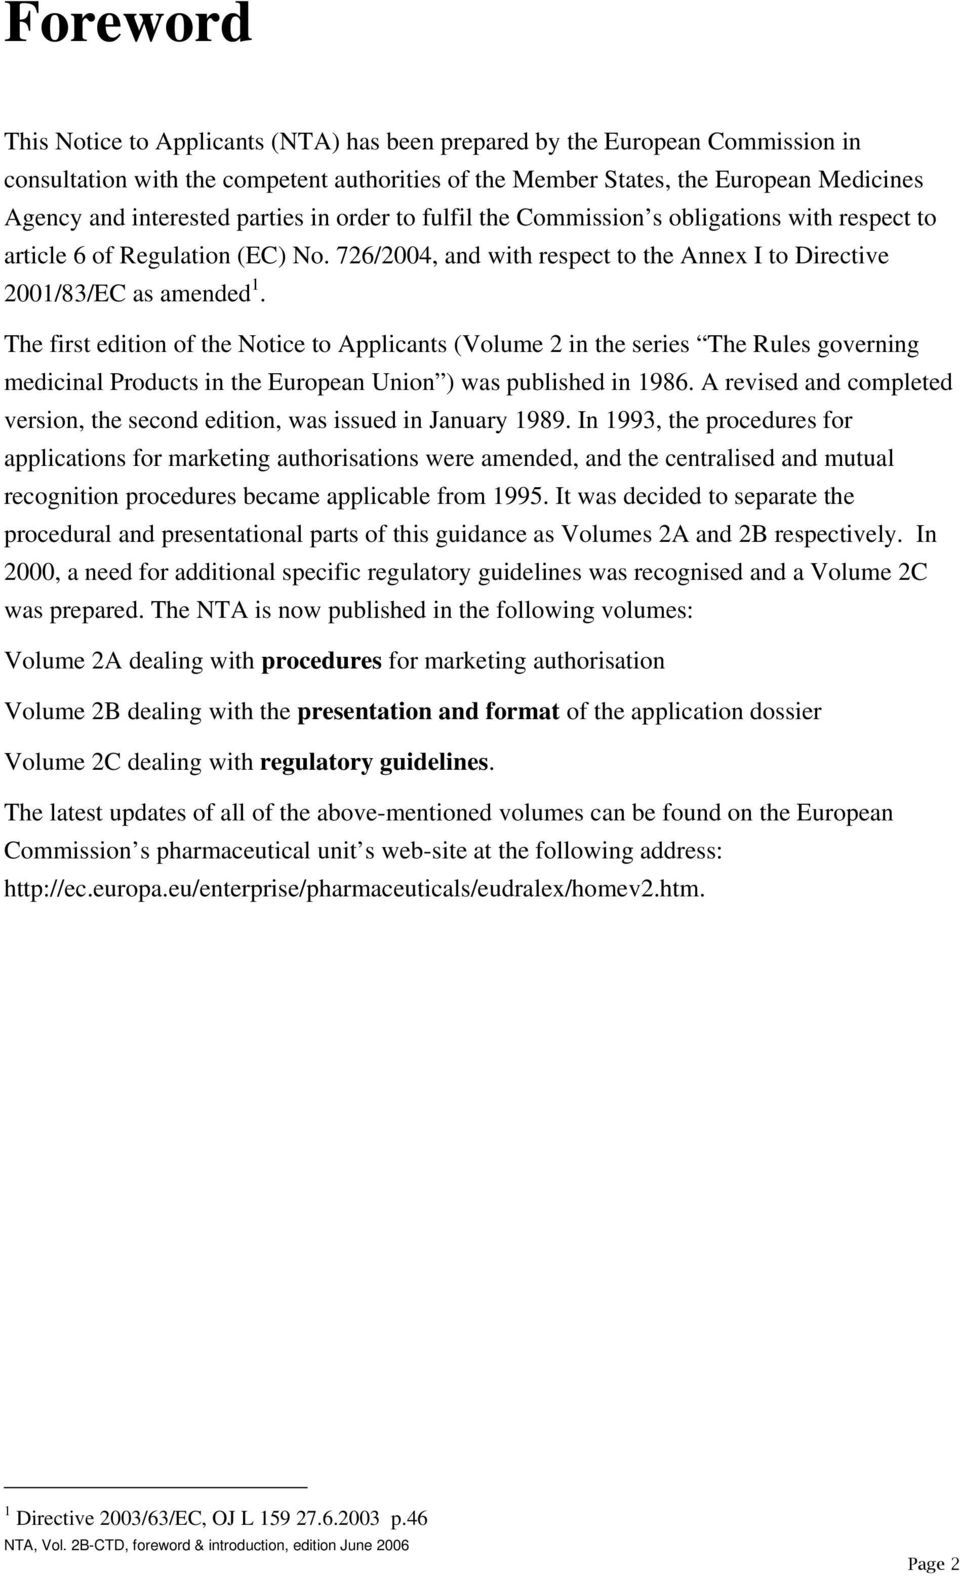 The first edition of the Notice to Applicants (Volume 2 in the series The Rules governing medicinal Products in the European Union ) was published in 1986.